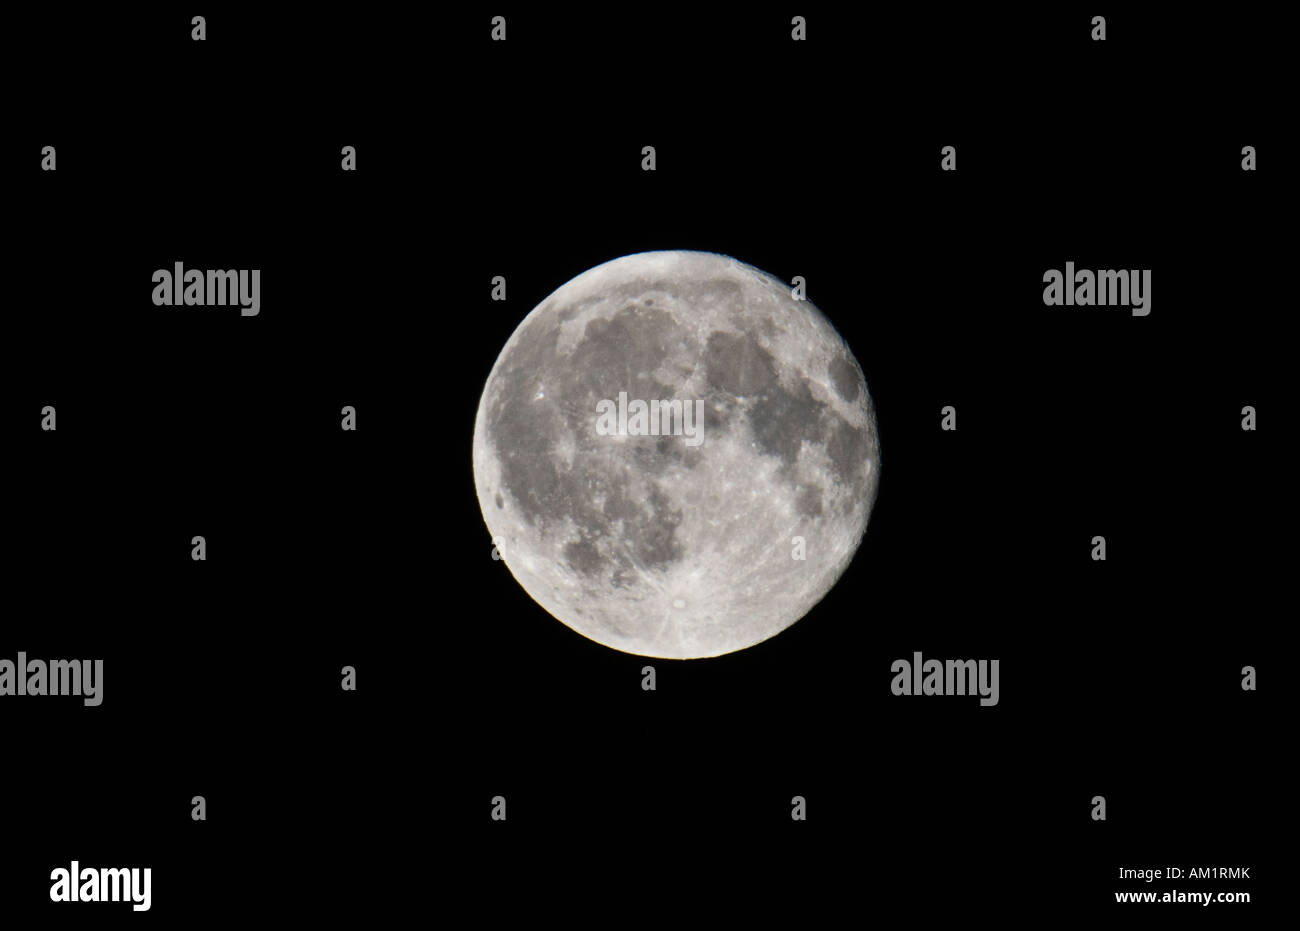 Moon. - Stock Image